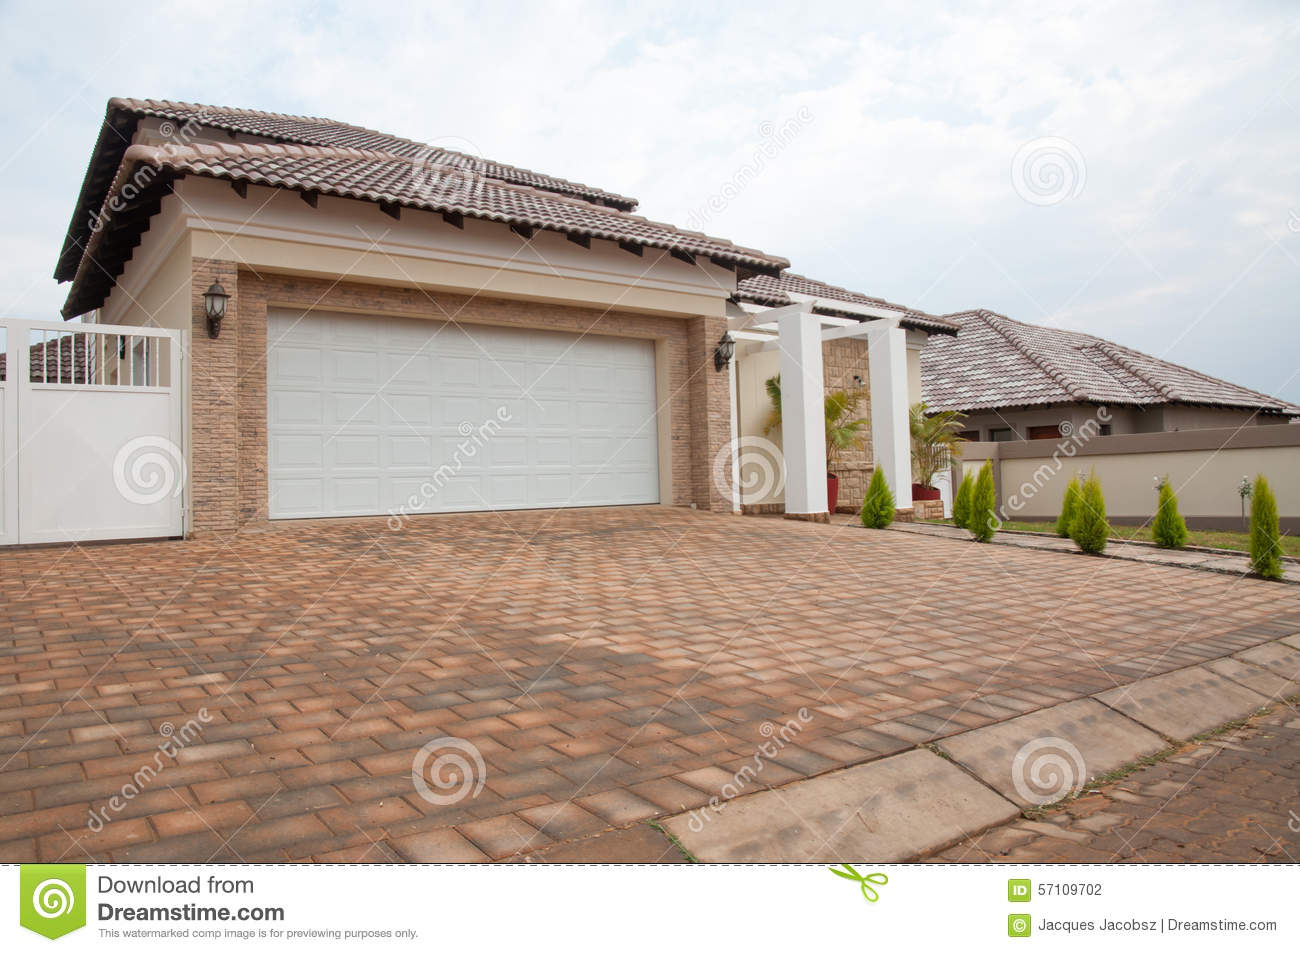 Suburban House For Sale Stock Photo Image Of Roof Selling